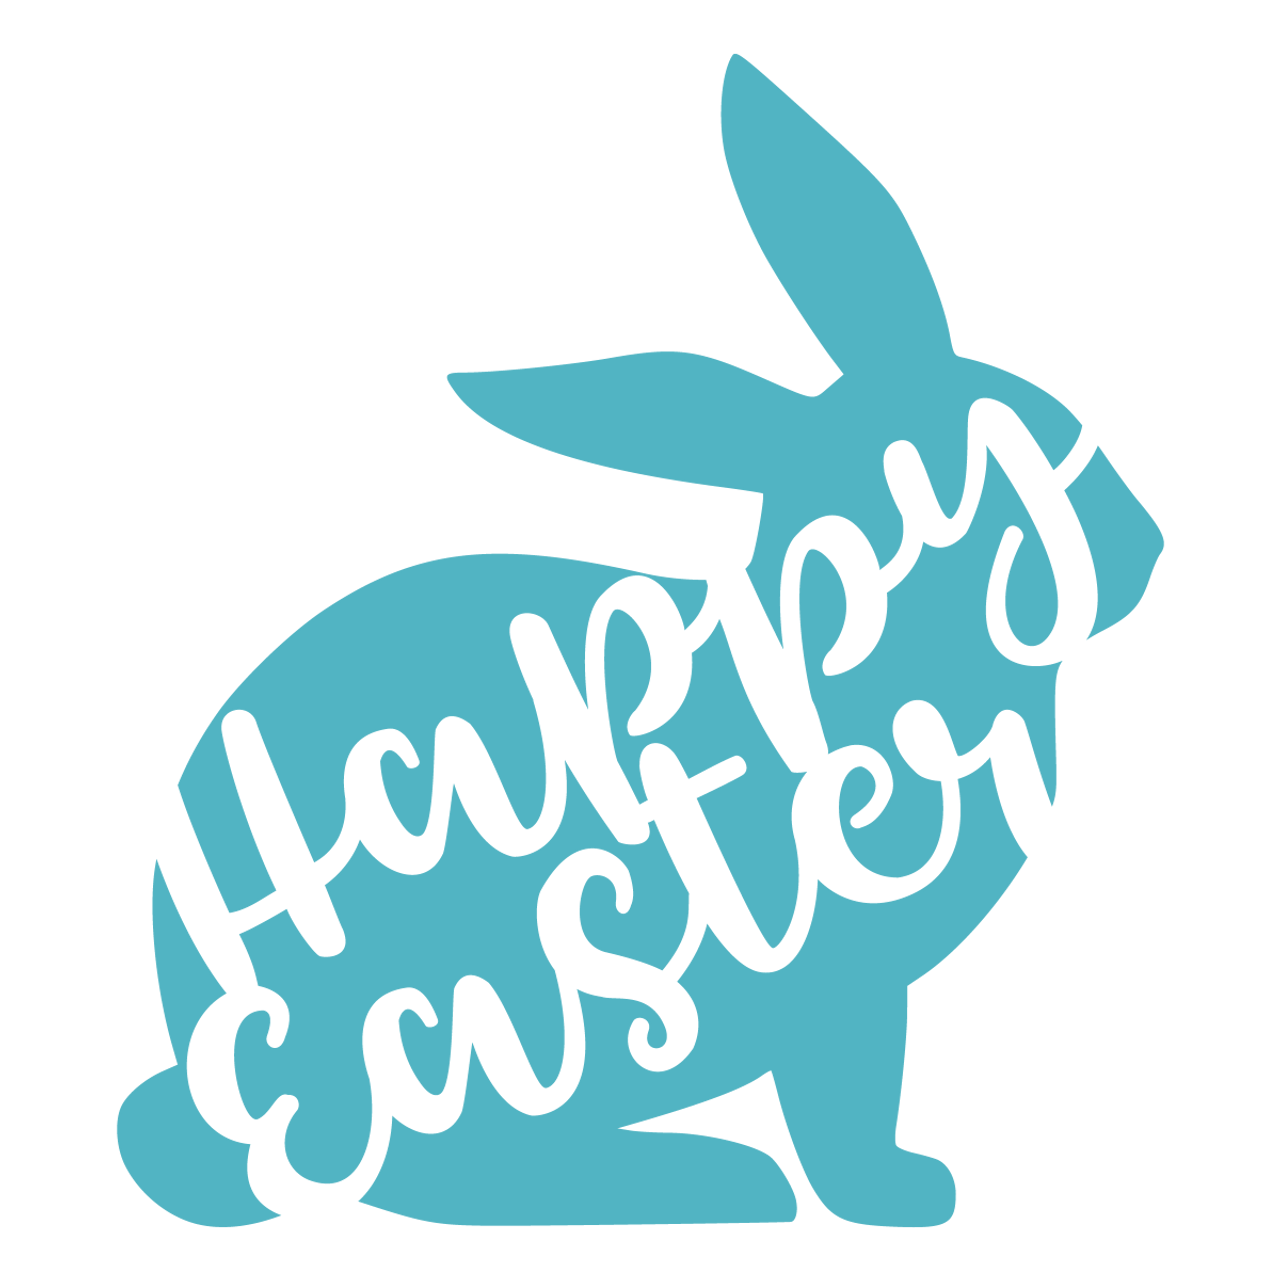 Happy Easter Svg Svg Eps Png Dxf Cut Files For Cricut And Silhouette Cameo By Savanasdesign